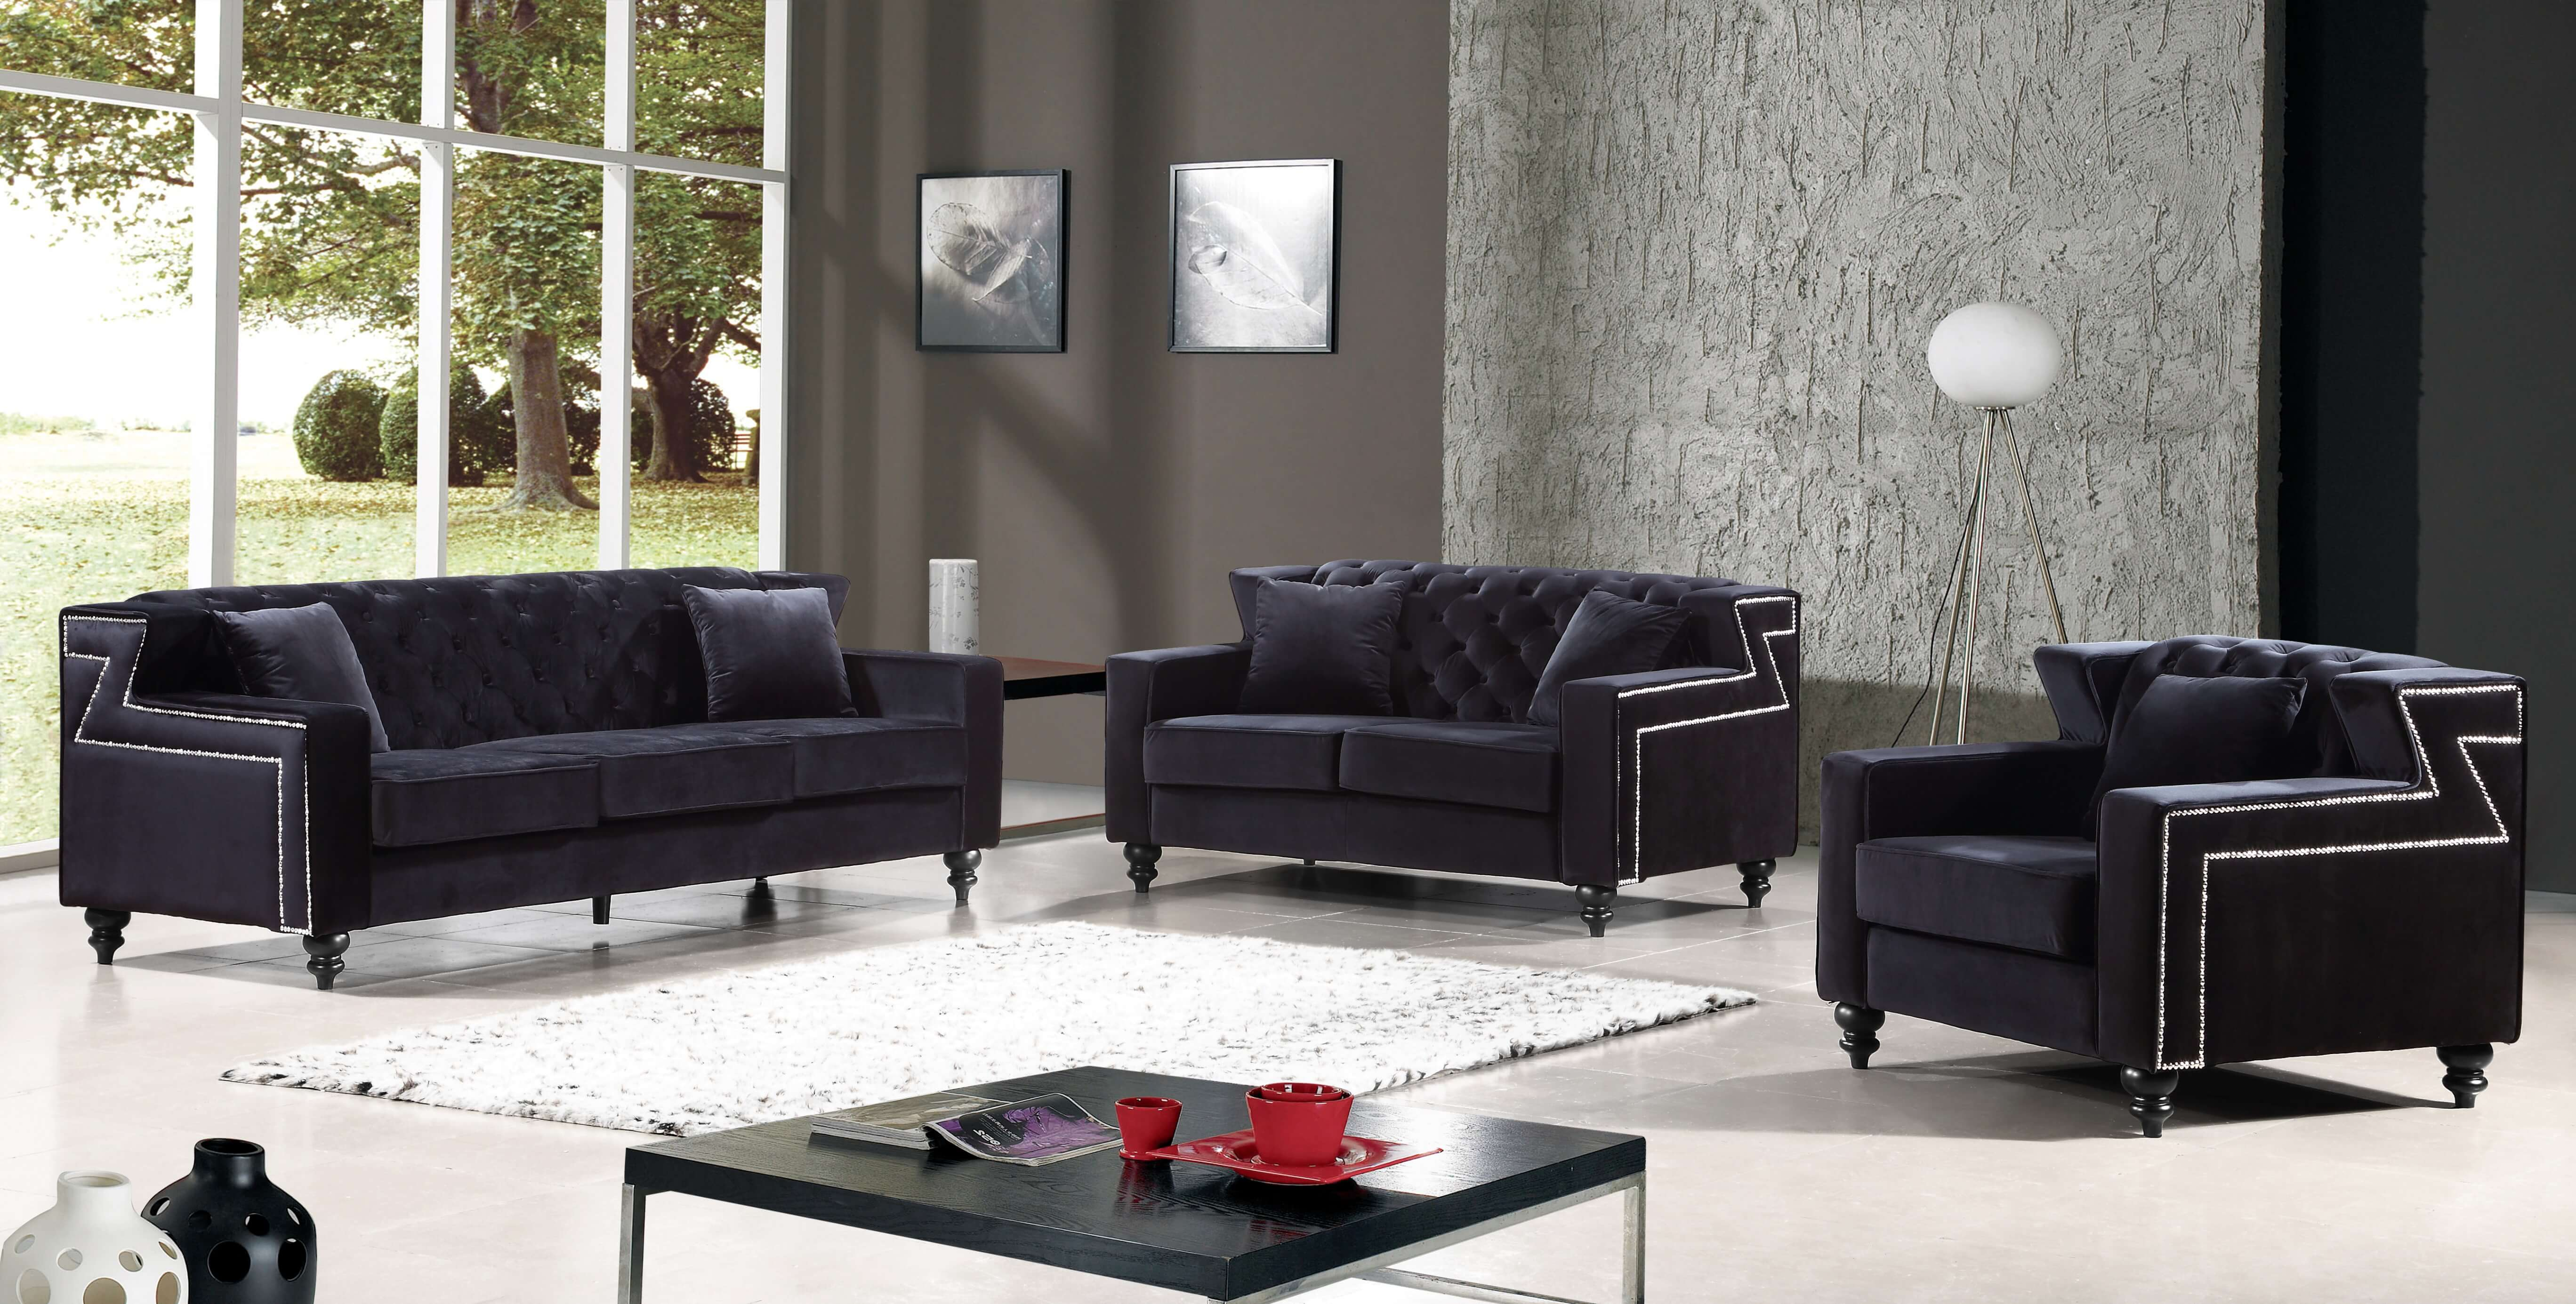 Harley Black Velvet Sofa and Loveseat | Fabric Living Room Sets